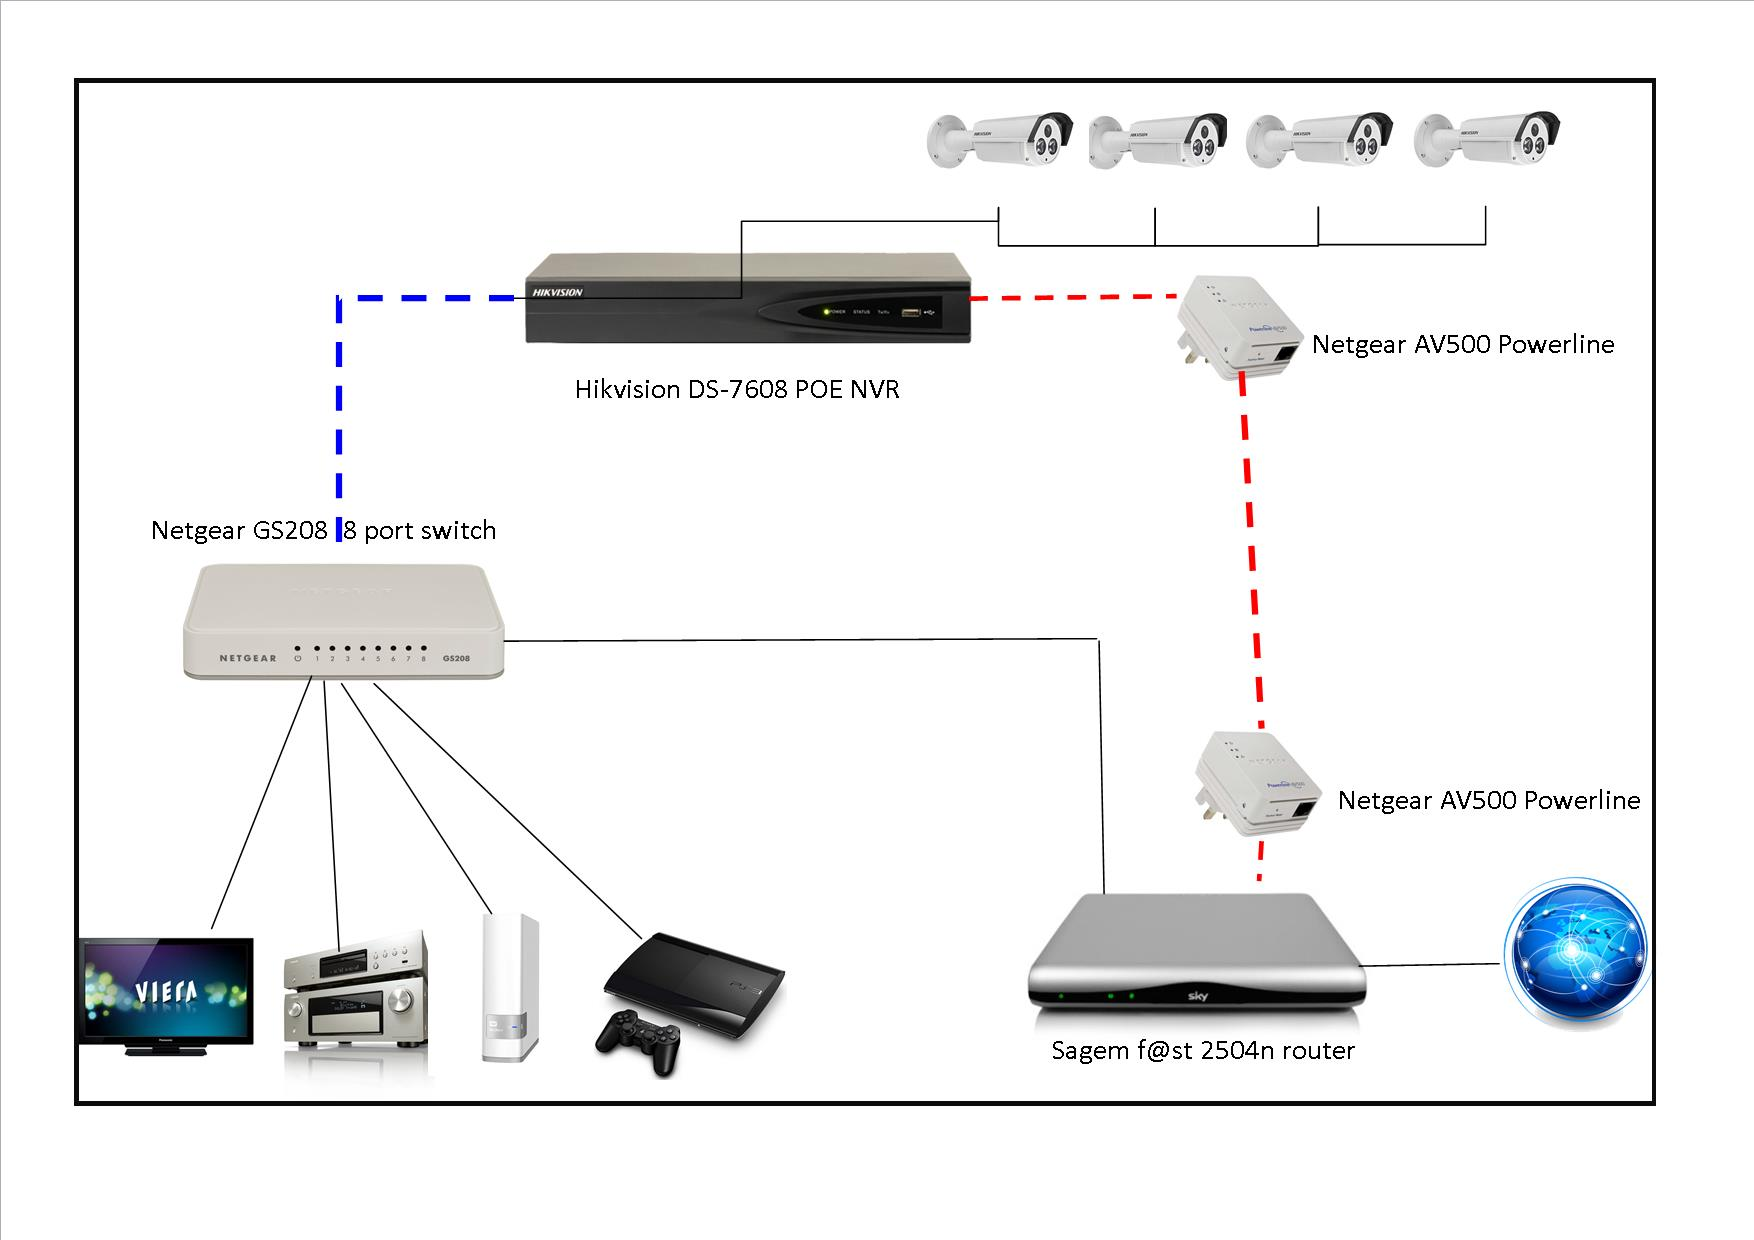 linking Status Failed on Hikvision NVR Using 8 Port Switch